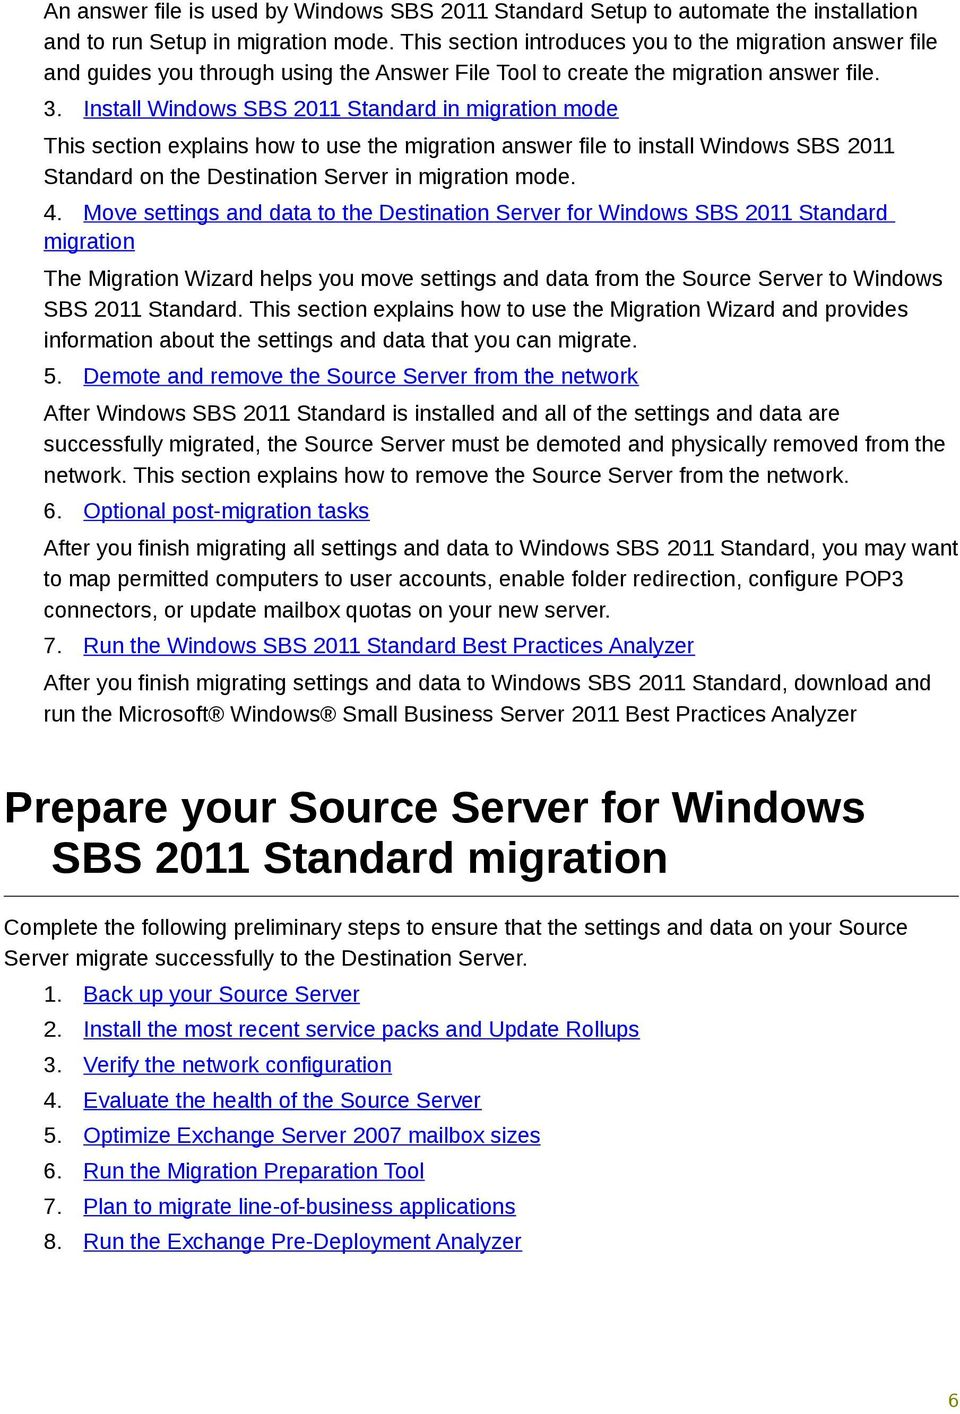 Install Windows SBS 2011 Standard in migration mode This section explains how to use the migration answer file to install Windows SBS 2011 Standard on the Destination Server in migration mode. 4.